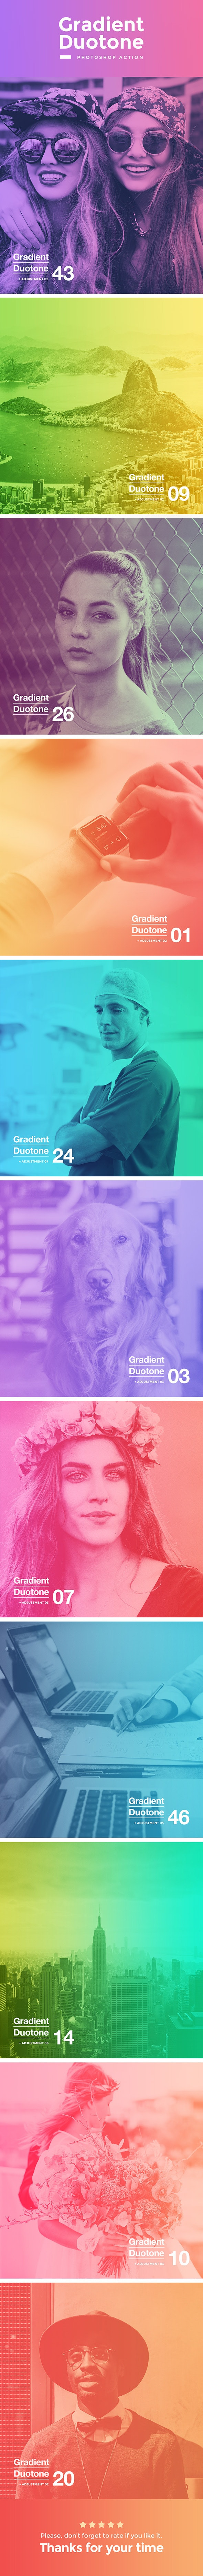 Gradient Duotone Photoshop Action - Photo Effects Actions